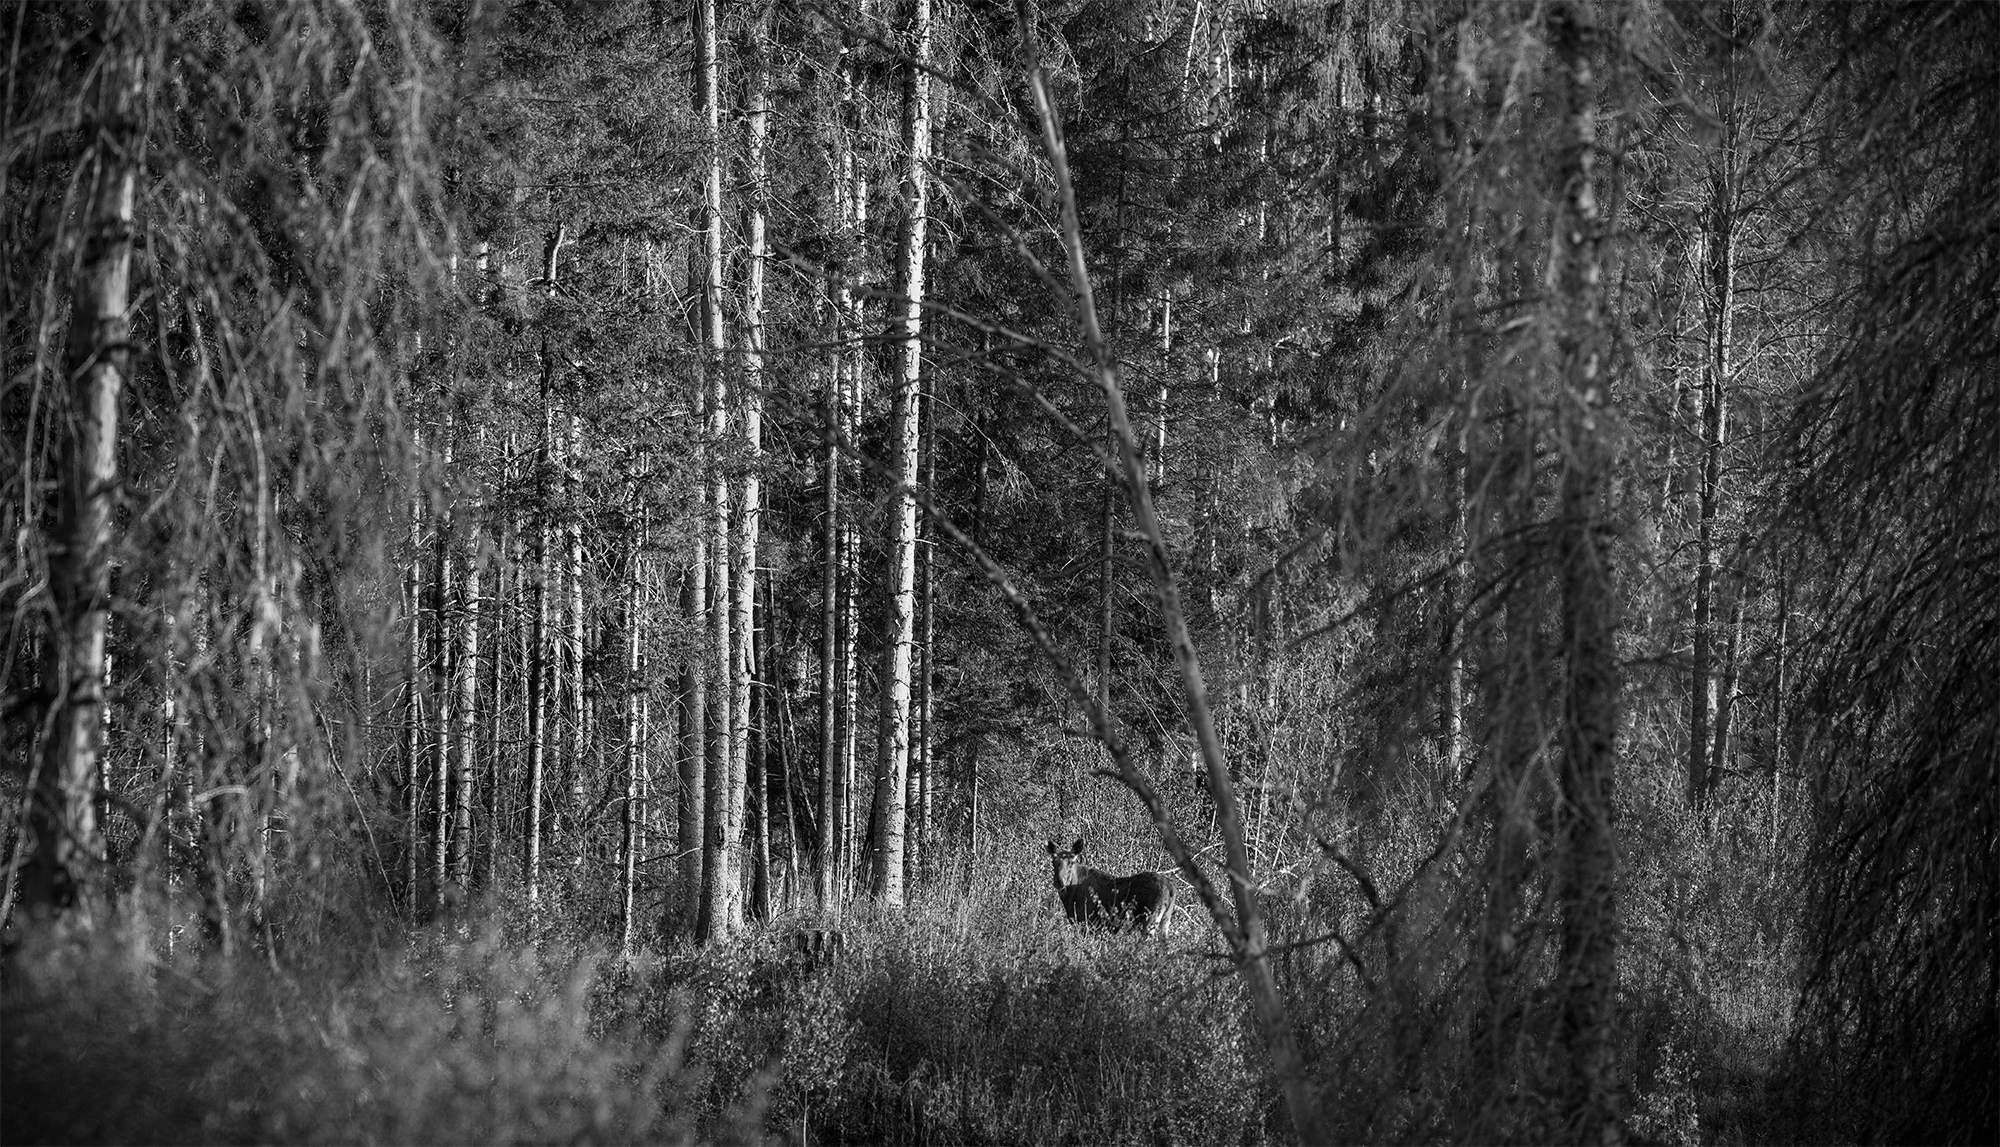 Põder, Alces alces, Moose